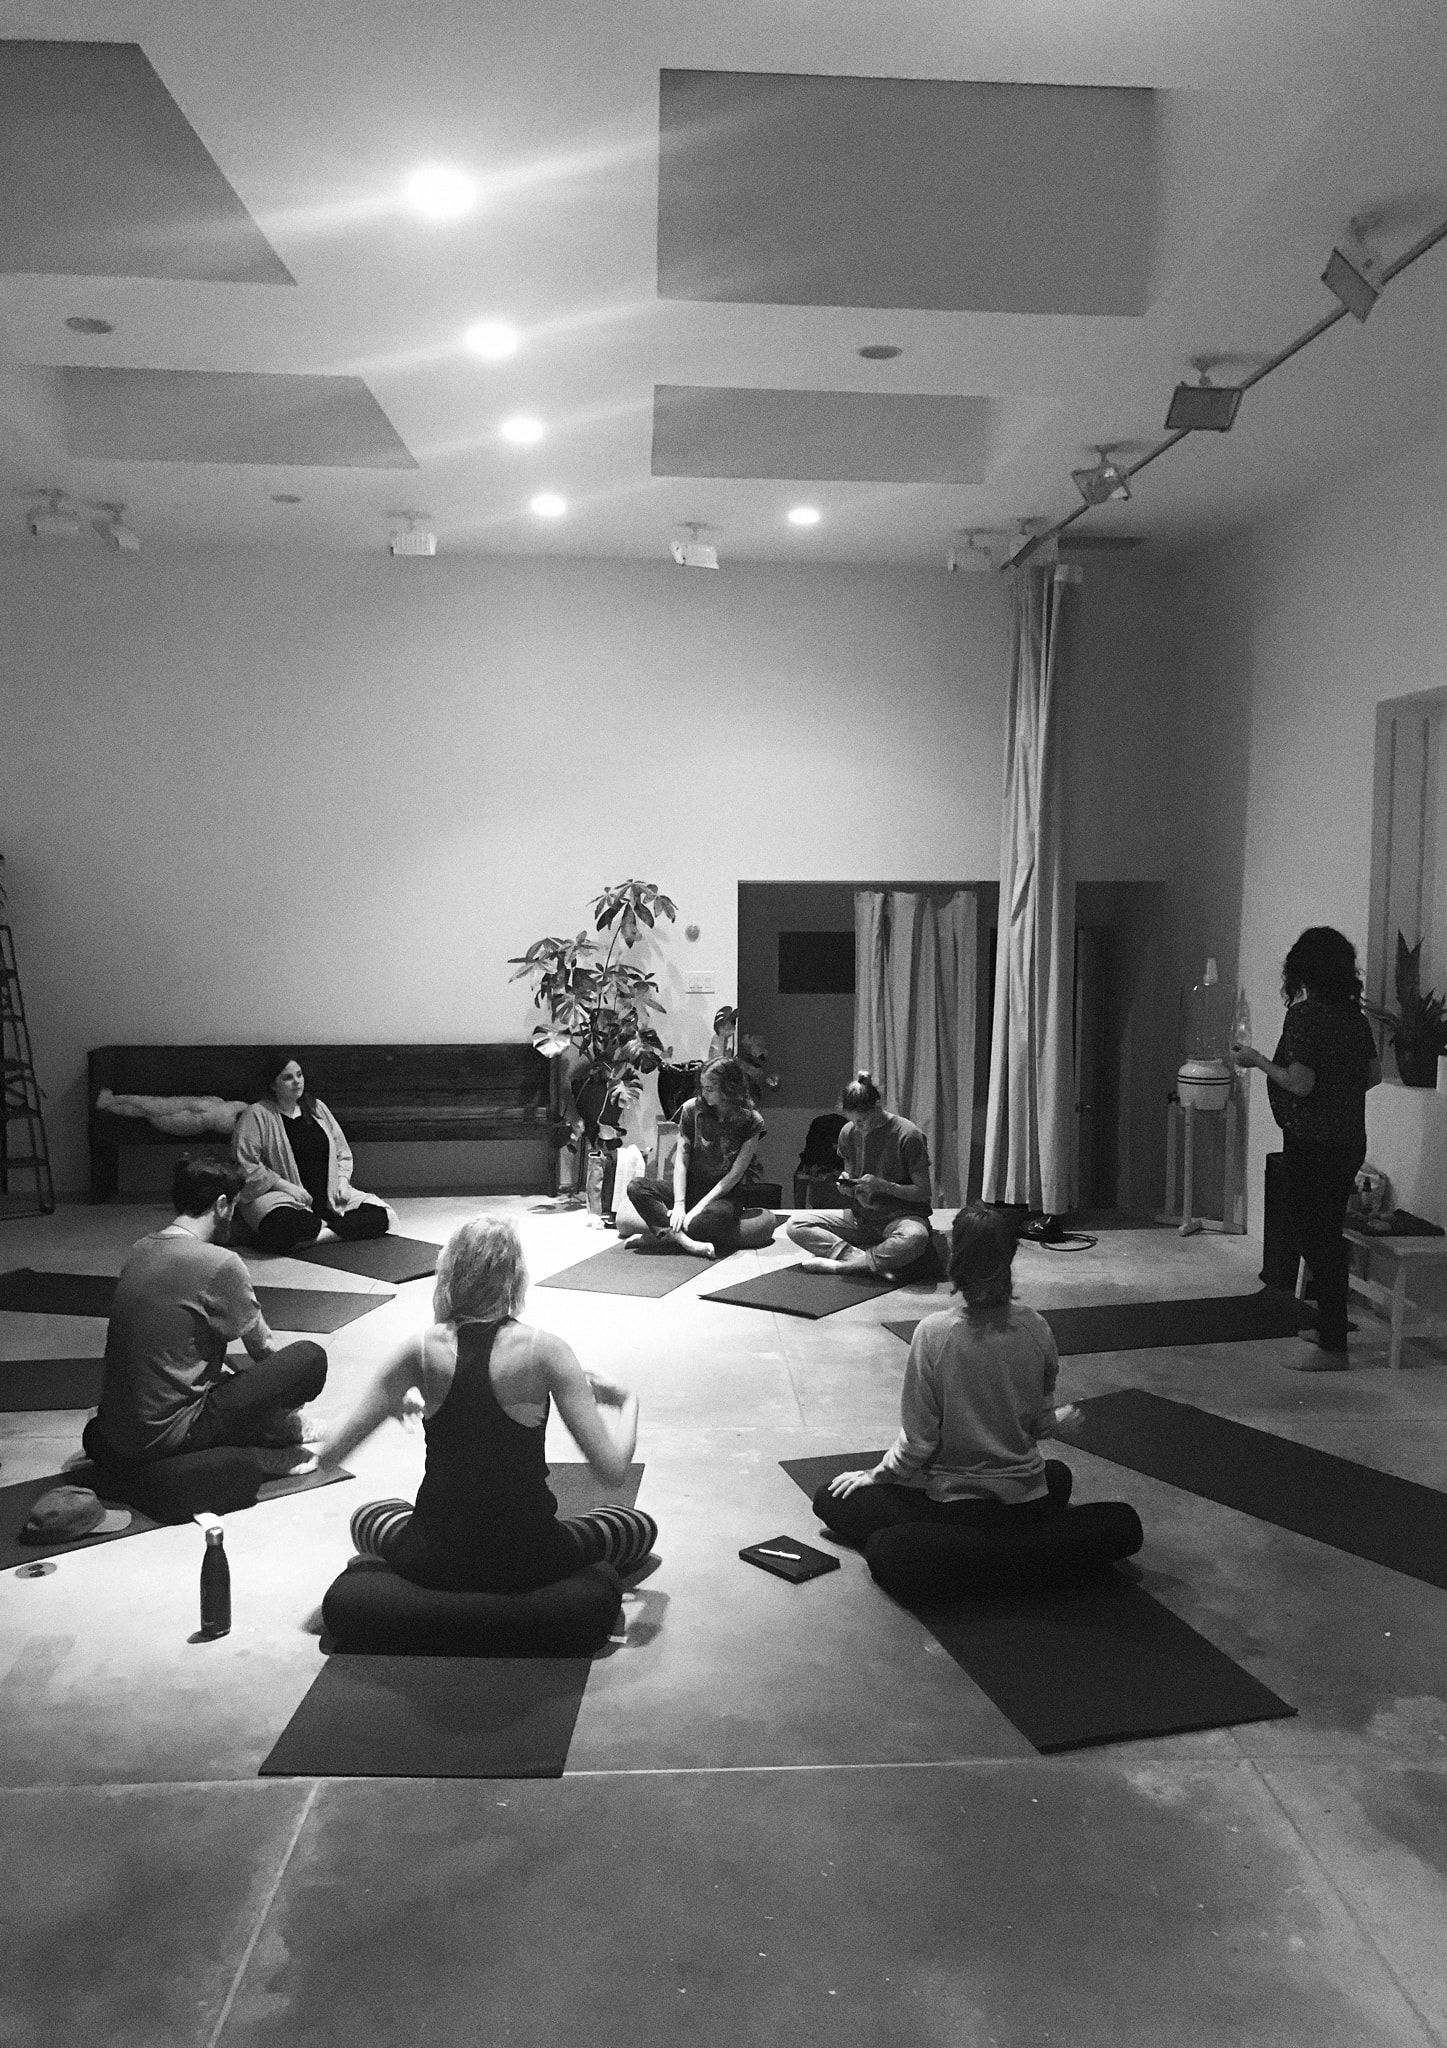 GROUP CLASSES - Our Group Classes can be customized to meet your needs. Gather your friends and we will tailor the class to fit your schedule and experience. Schedule by contacting us.